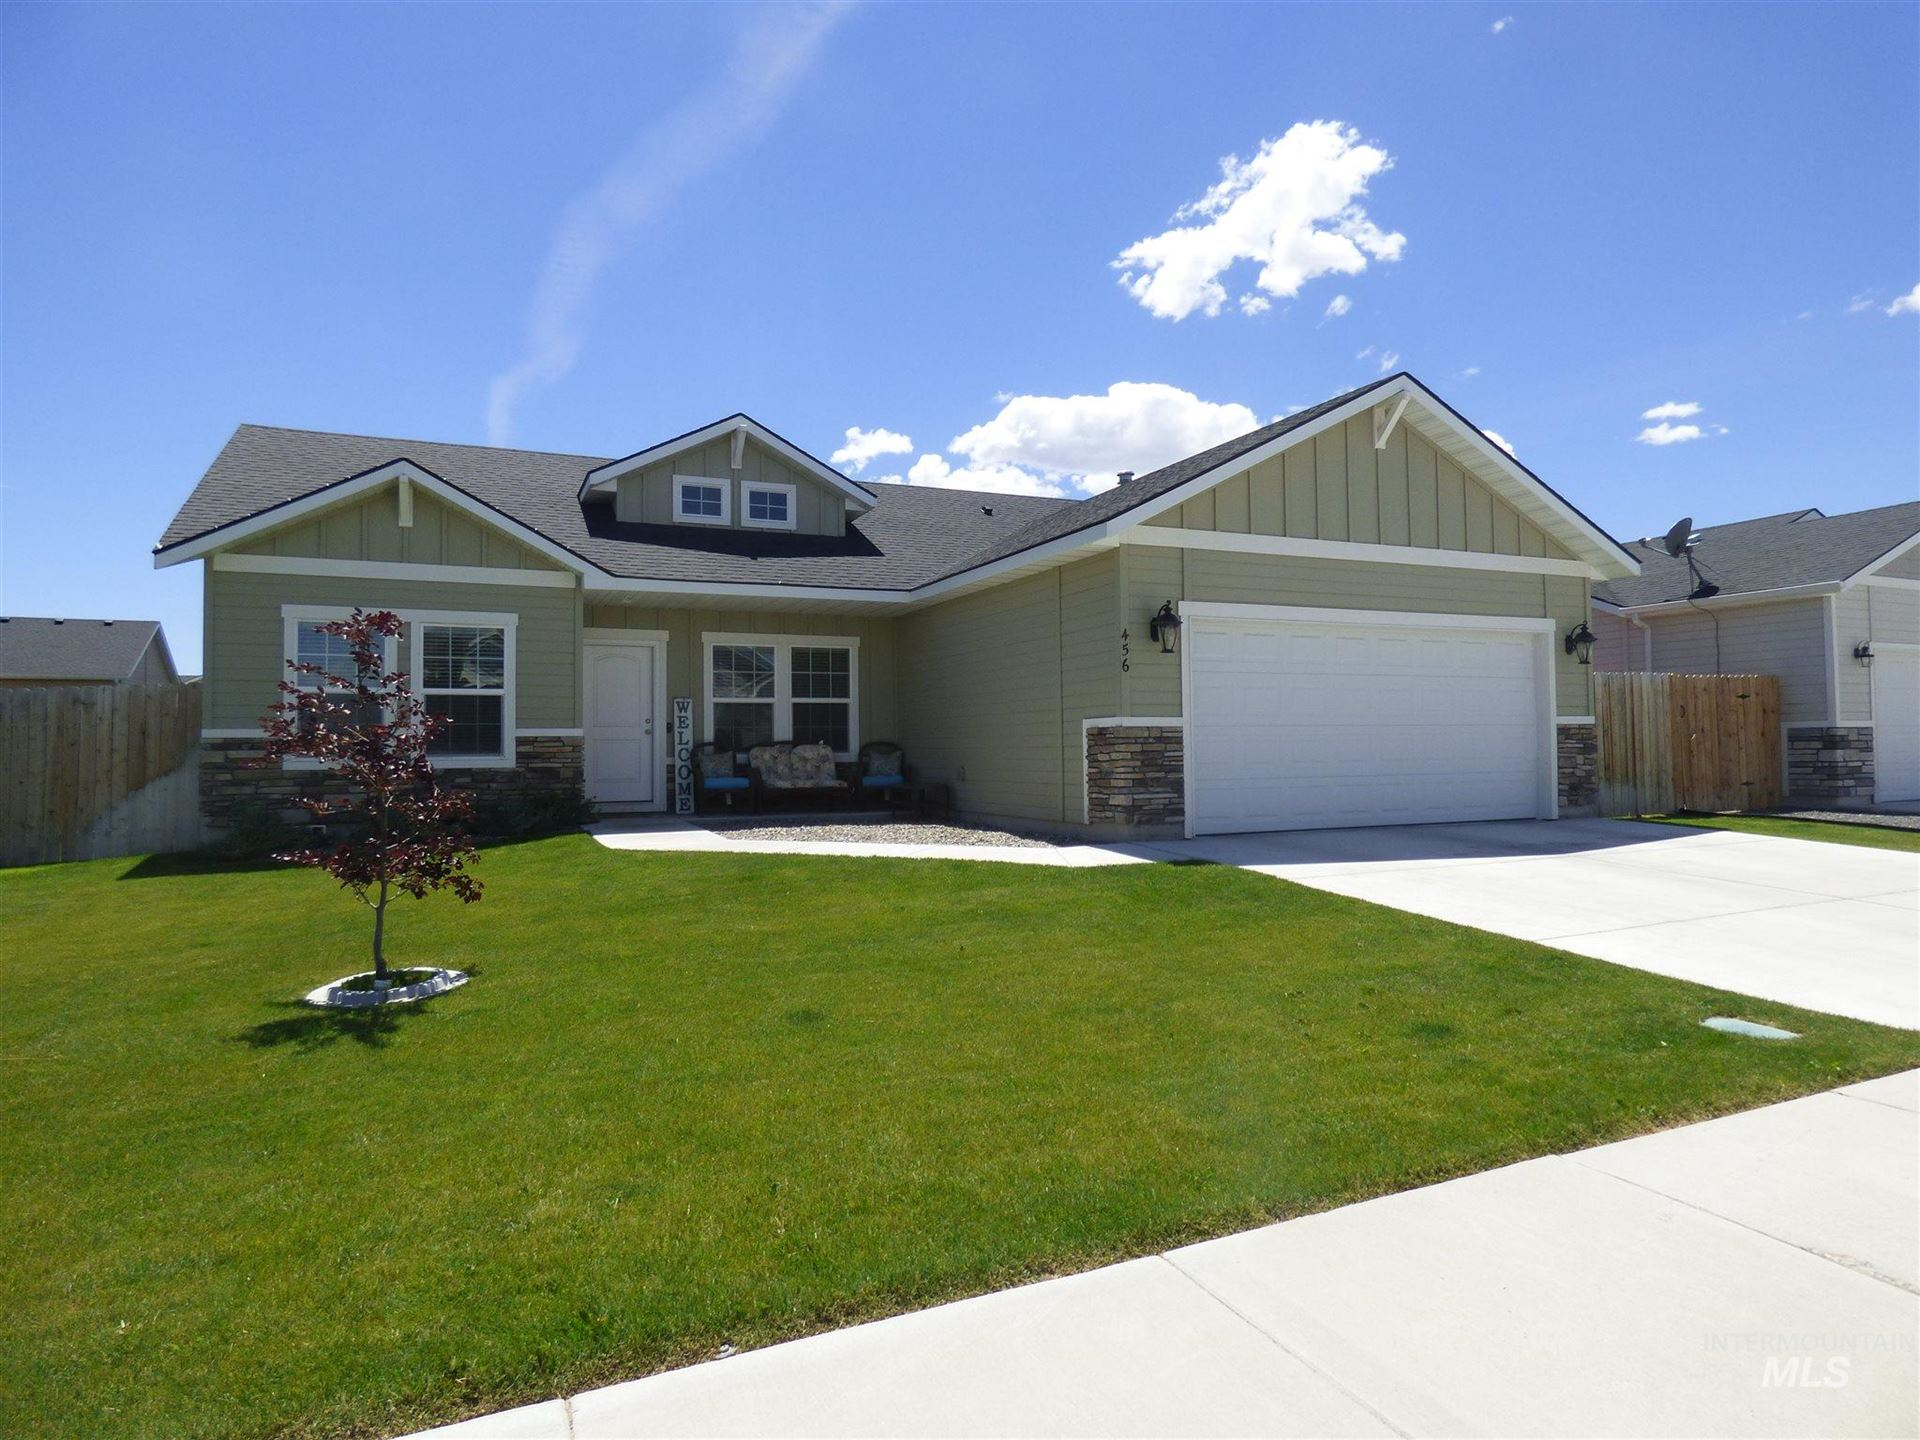 456 Feather Ave, Twin Falls, ID 83301 - MLS#: 98770357